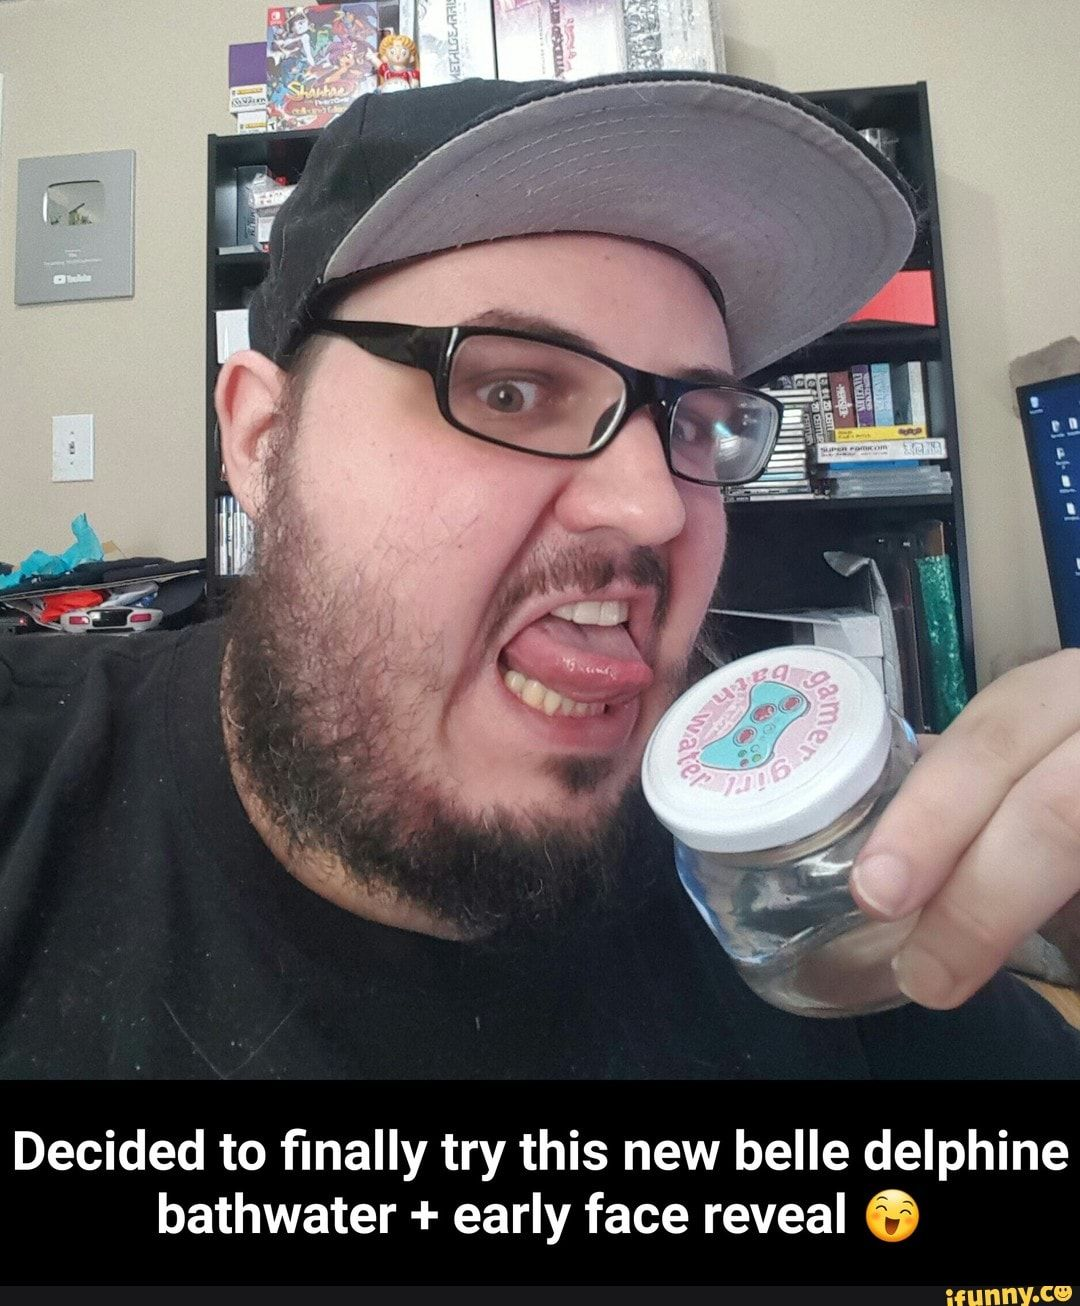 Decided to finally try this new belle delphine bathwater